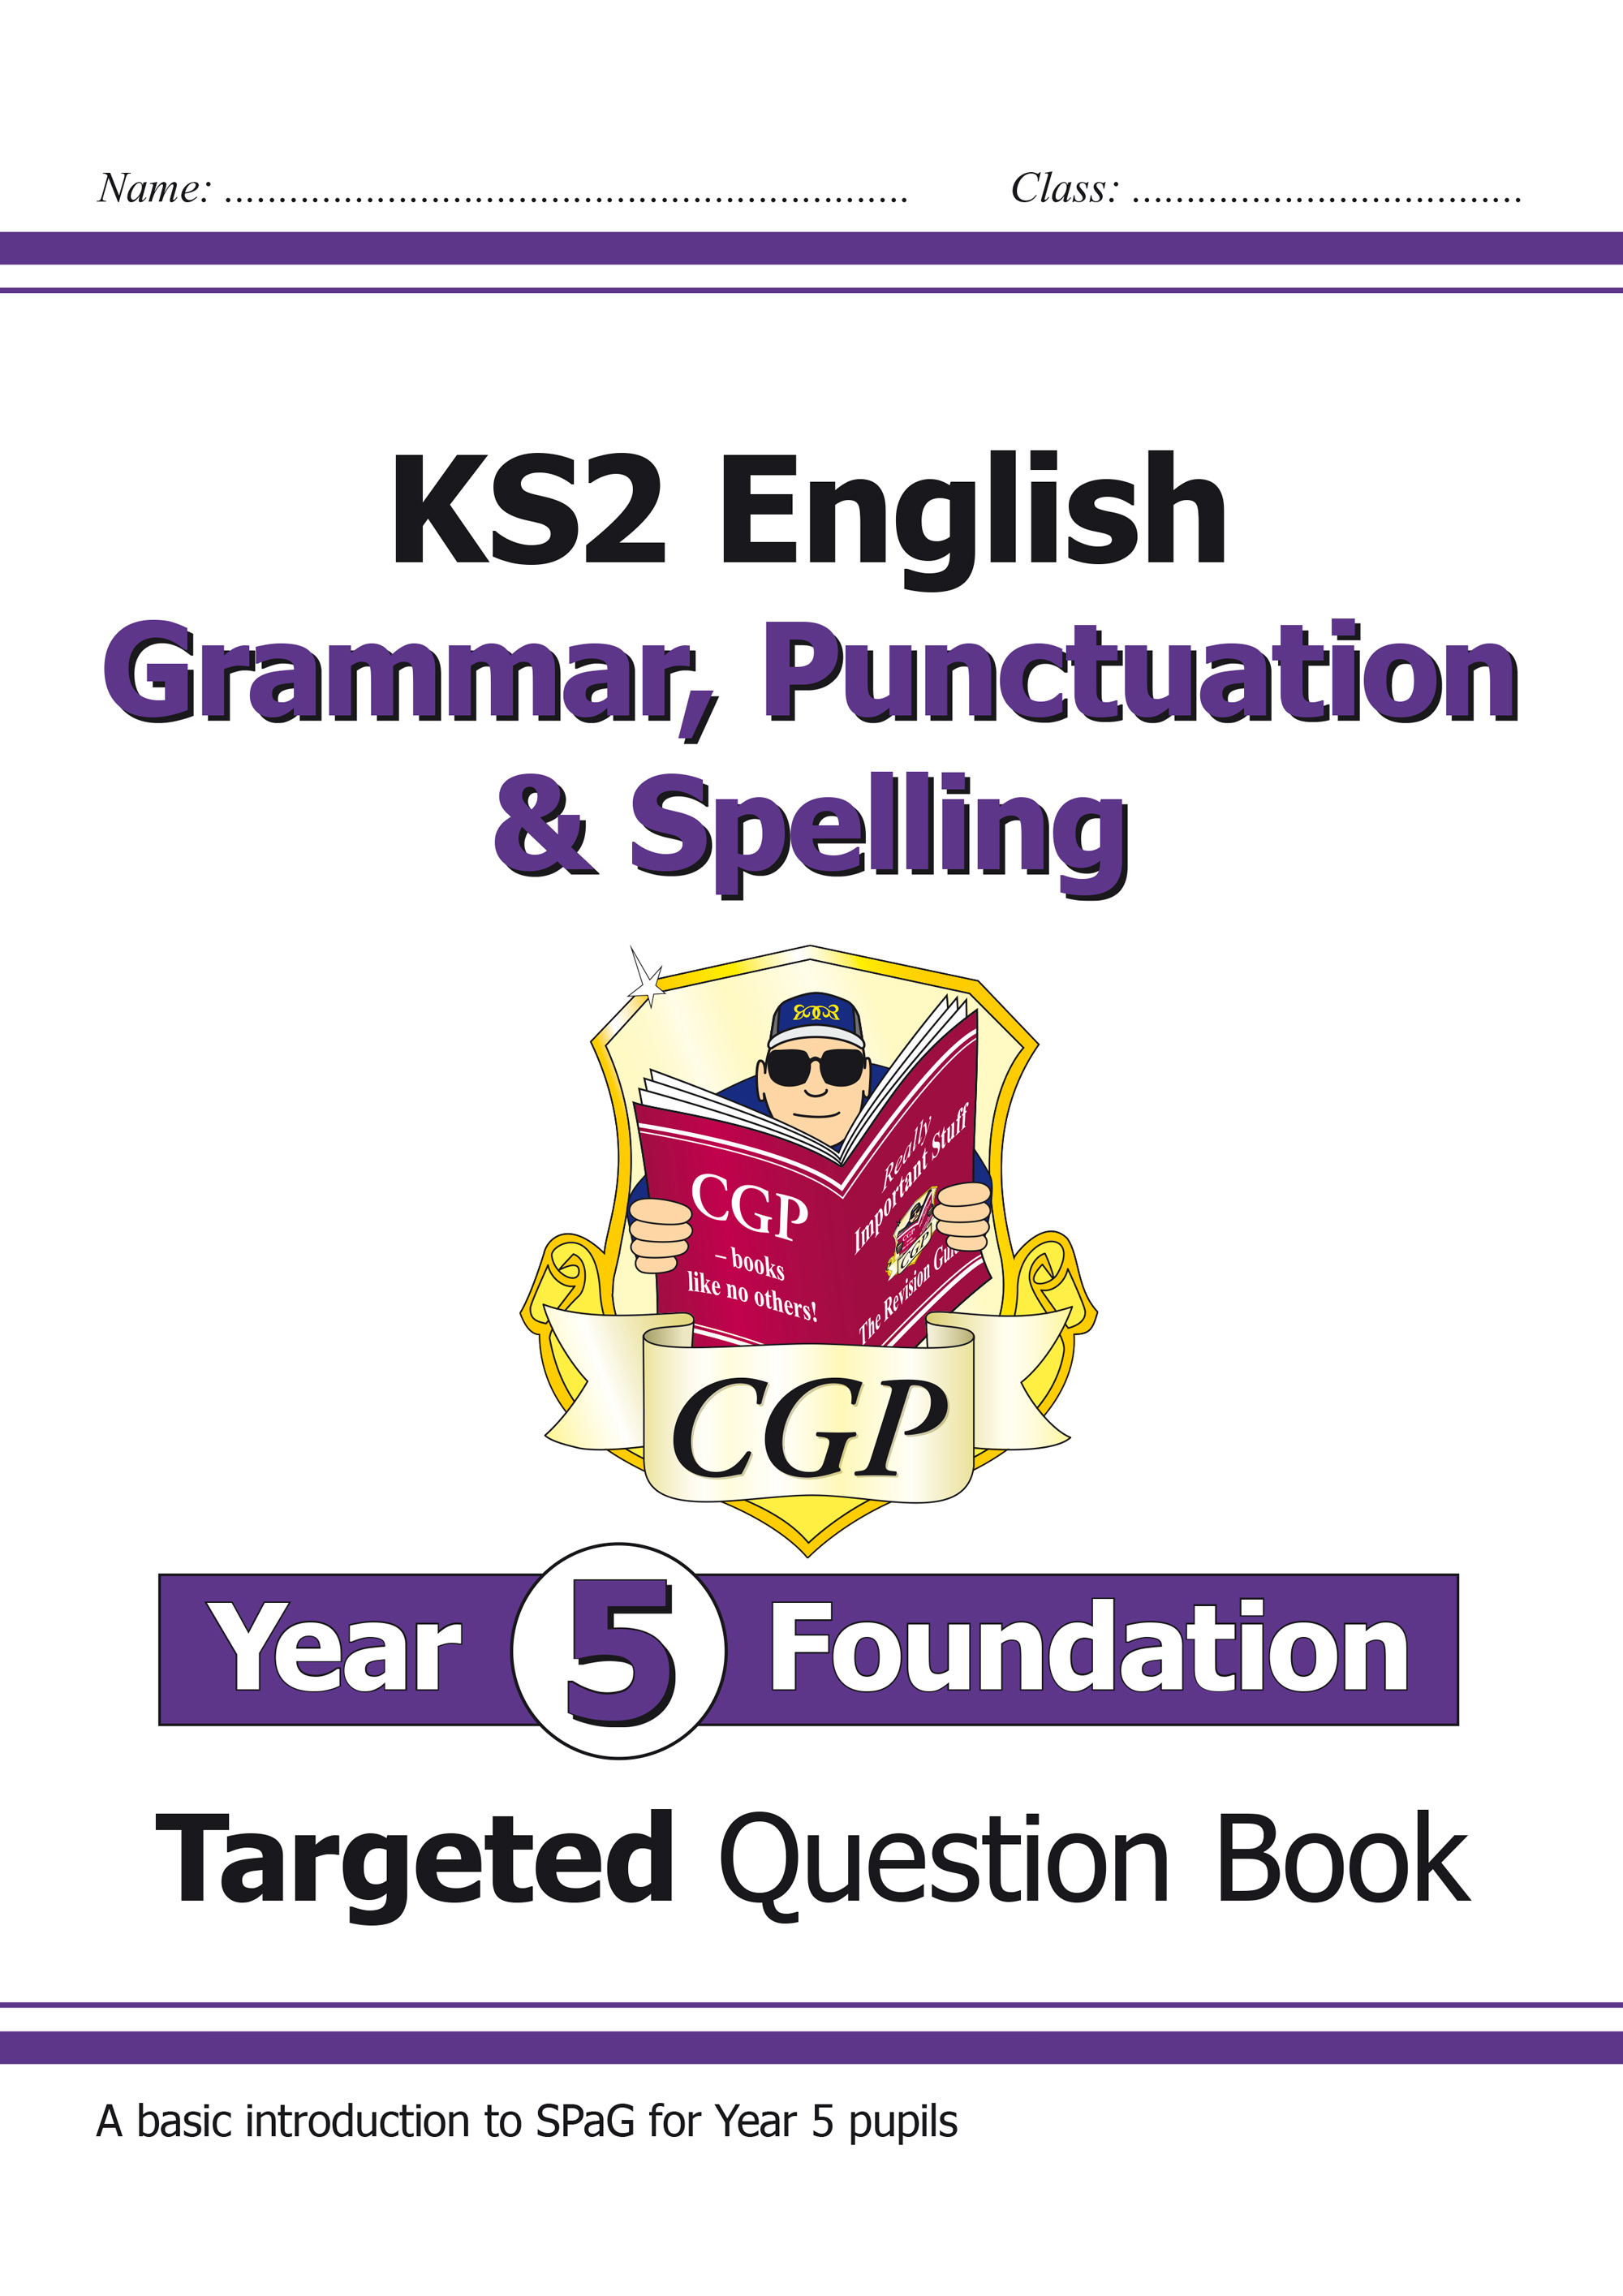 EG5FW21 - New KS2 English Targeted Question Book: Grammar, Punctuation & Spelling - Year 5 Foundatio